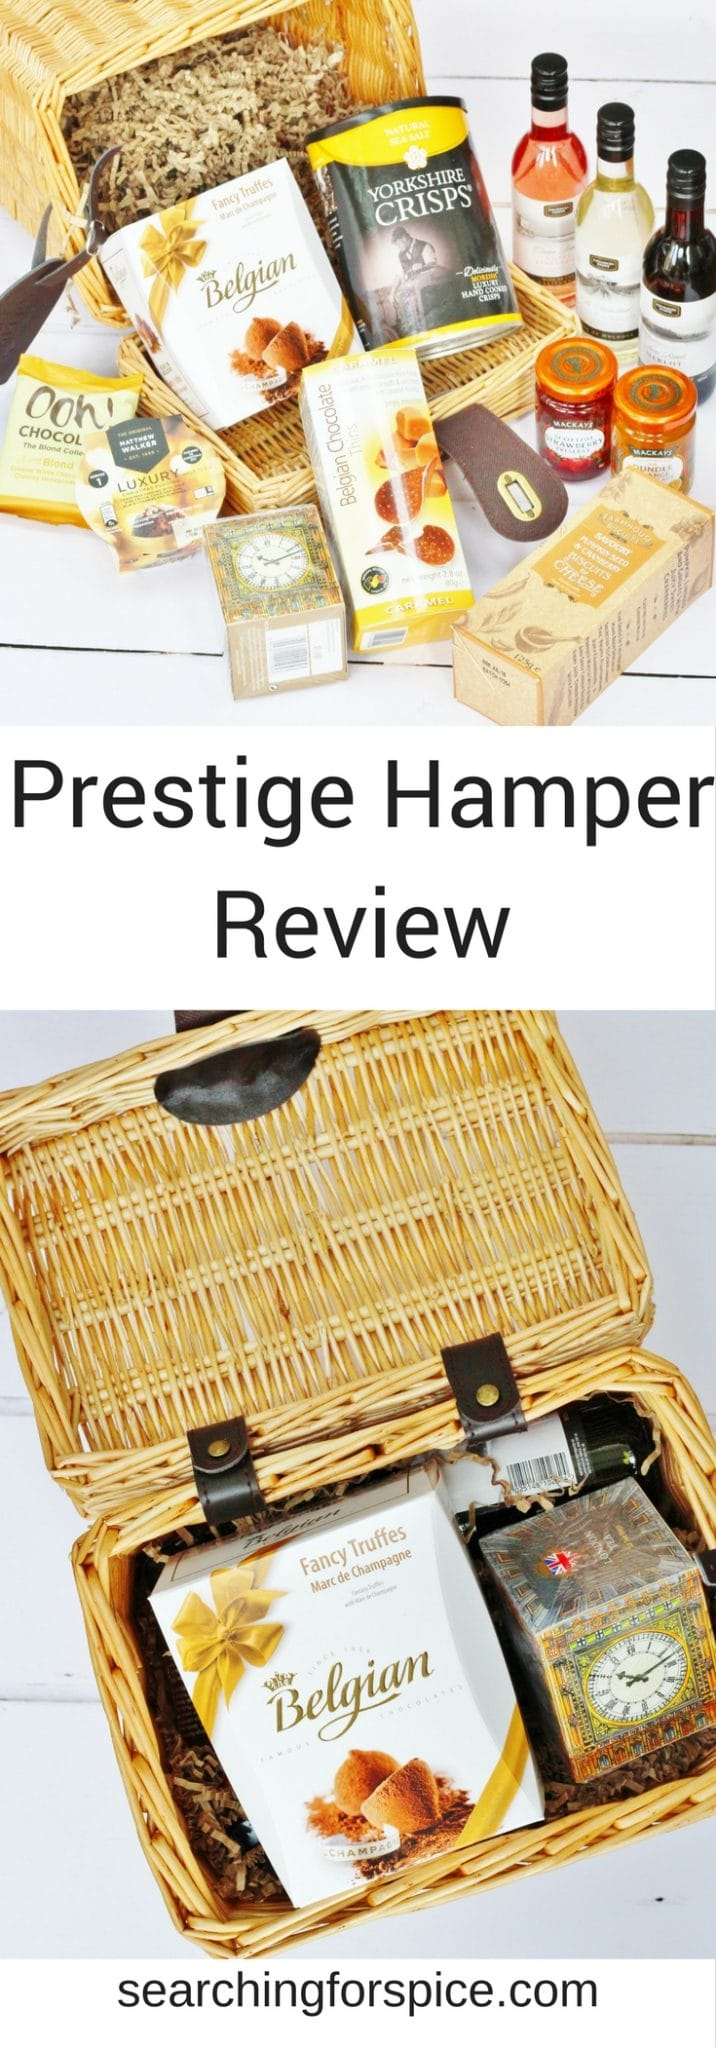 Review of Prestige Hampers and the Fabulous Christmas Hamper. These hampers make great christmas gifts for foodies #review #PrestigeHampers #ChristmasGifts